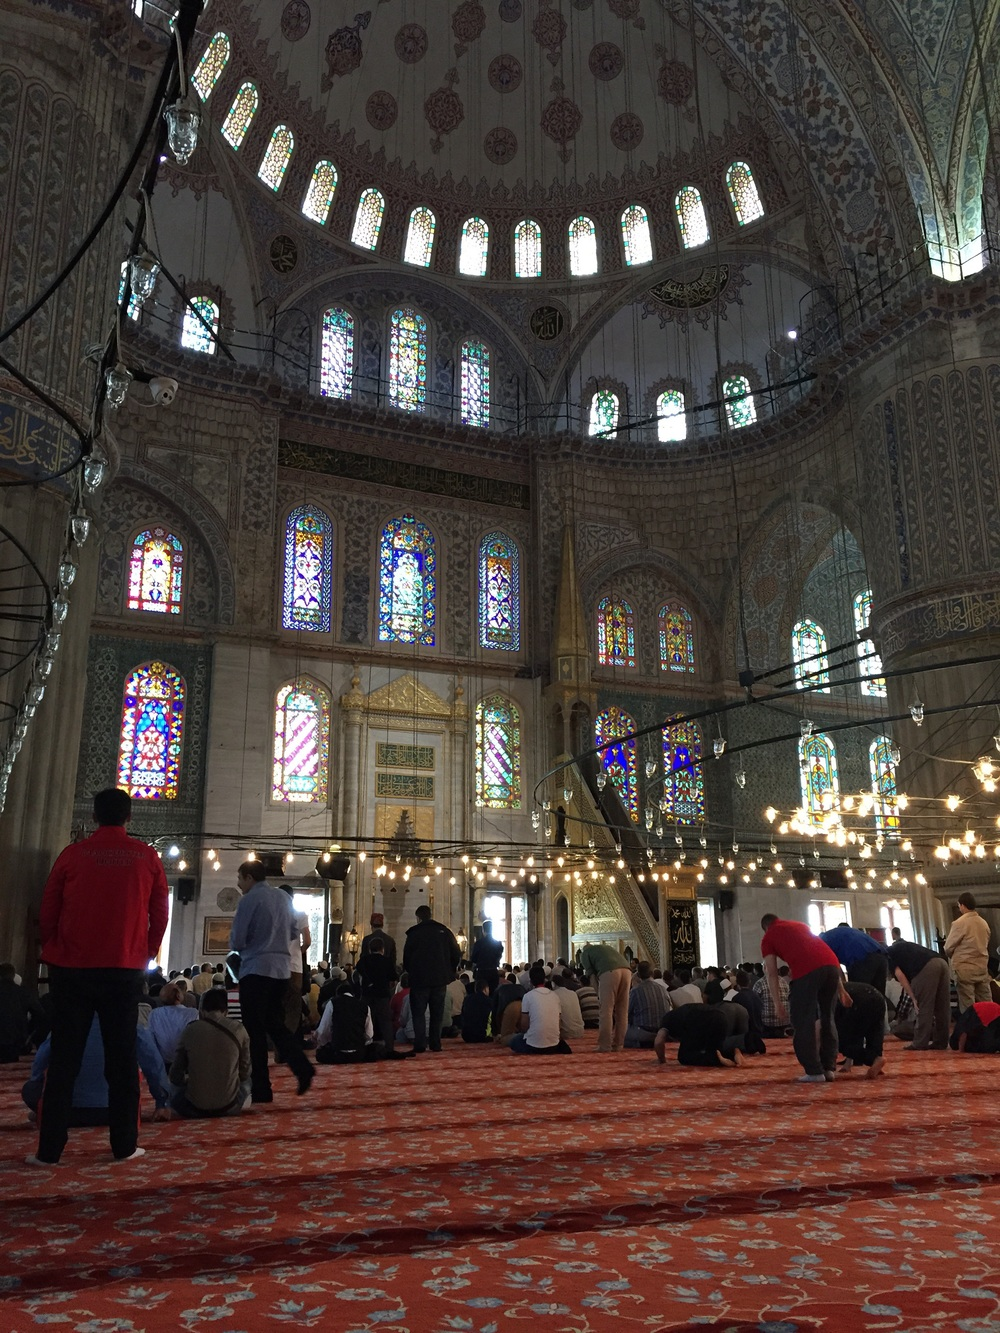 Muslims praying inside the Blue Mosque